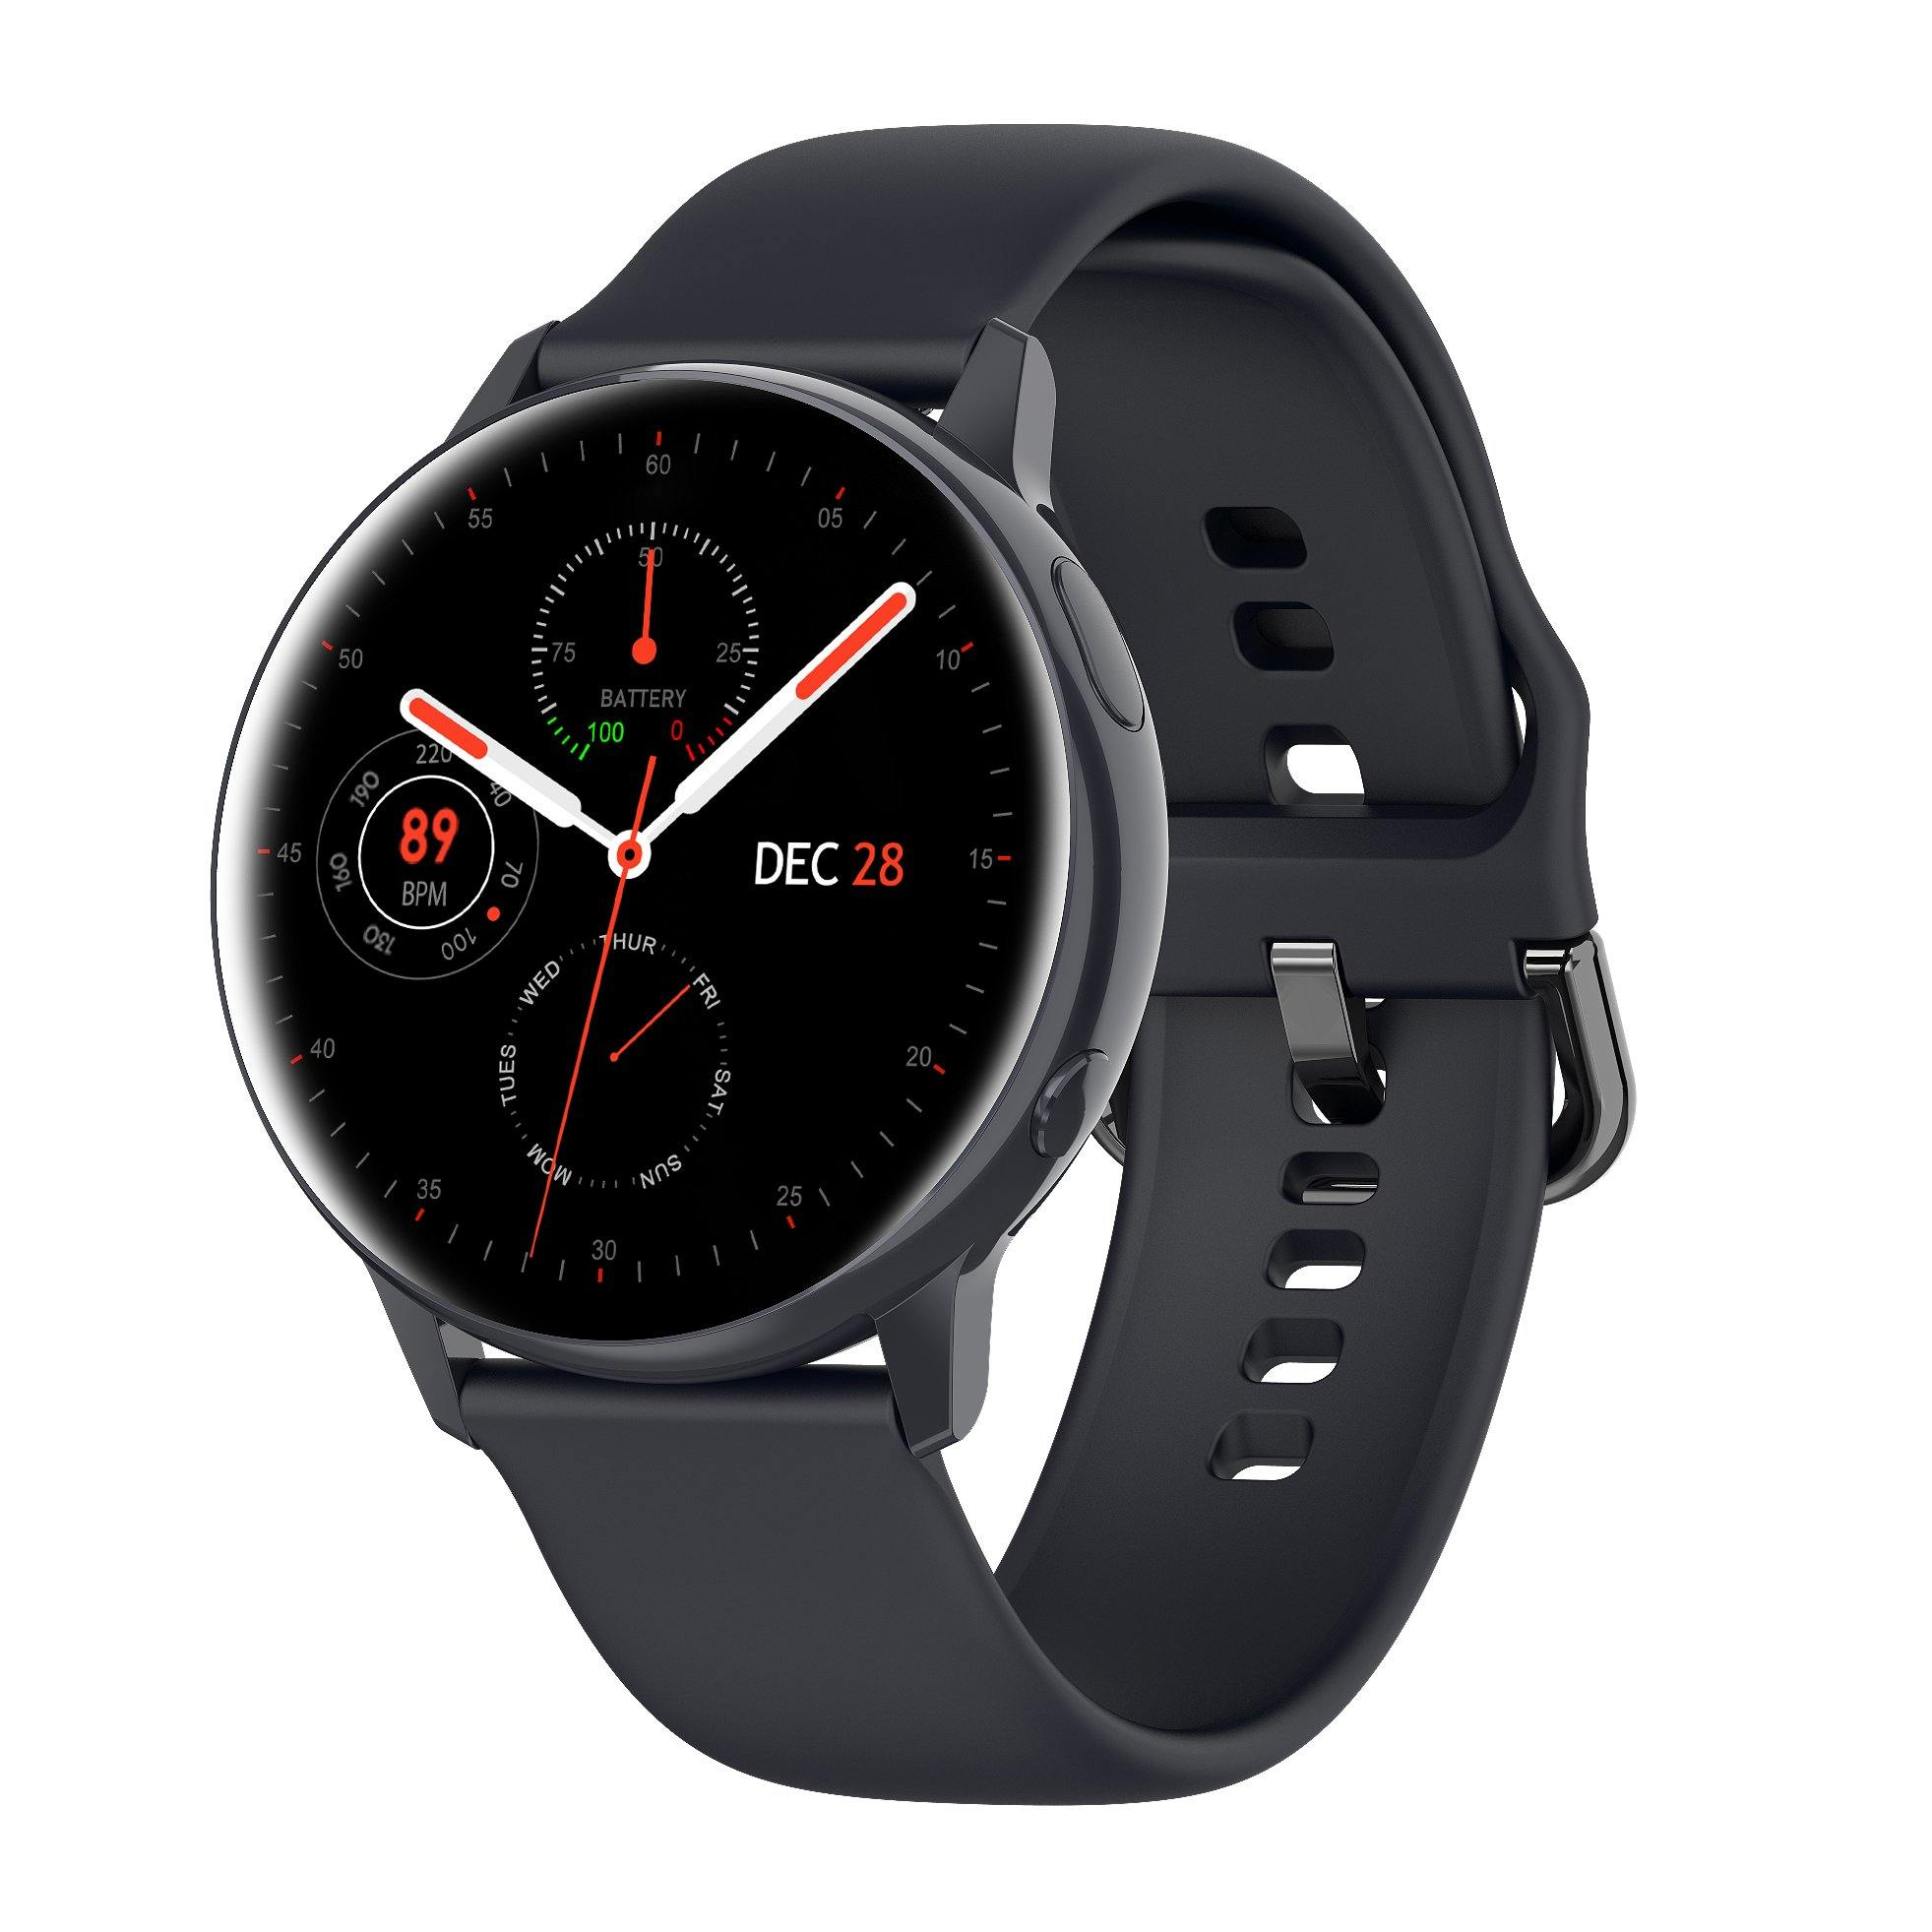 Microwear SG2 Fitness/Smartwatch - Black Silicon